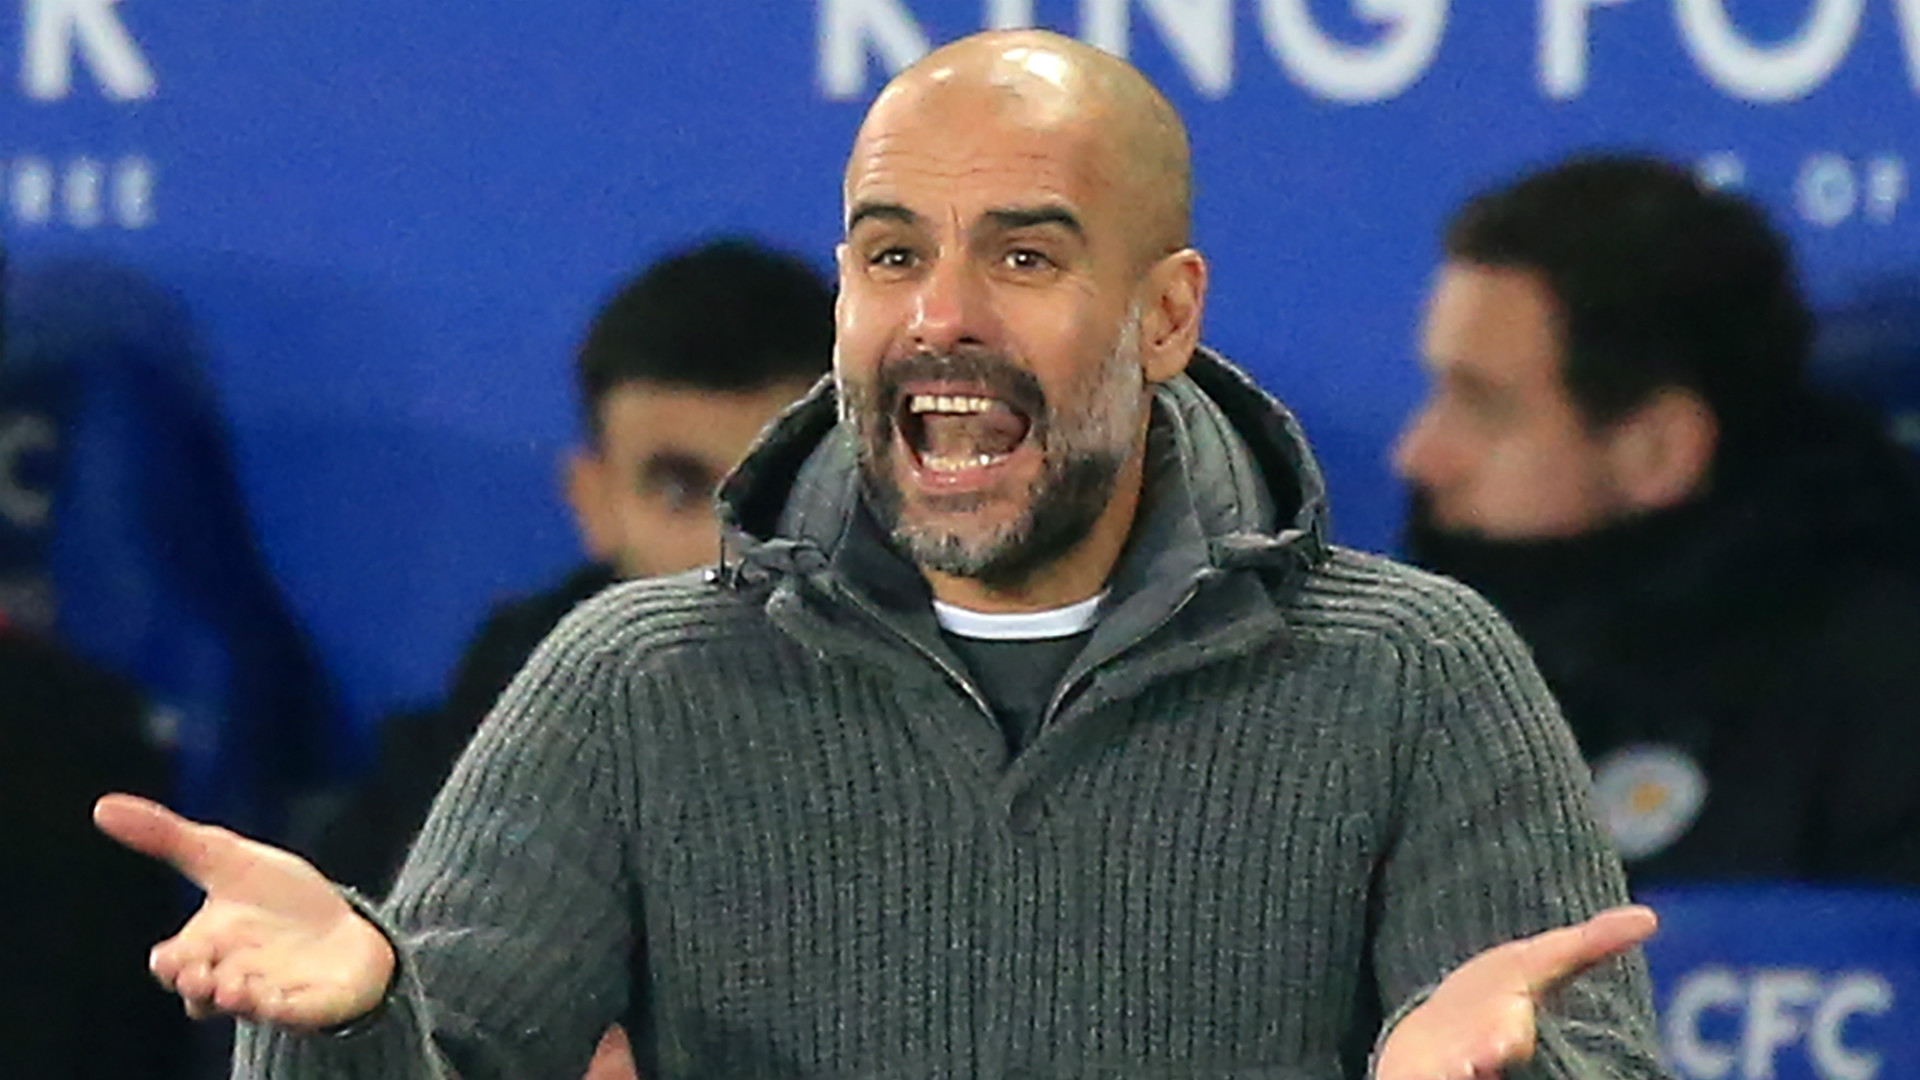 It is too early to say Premier League title race is over, says Guardiola